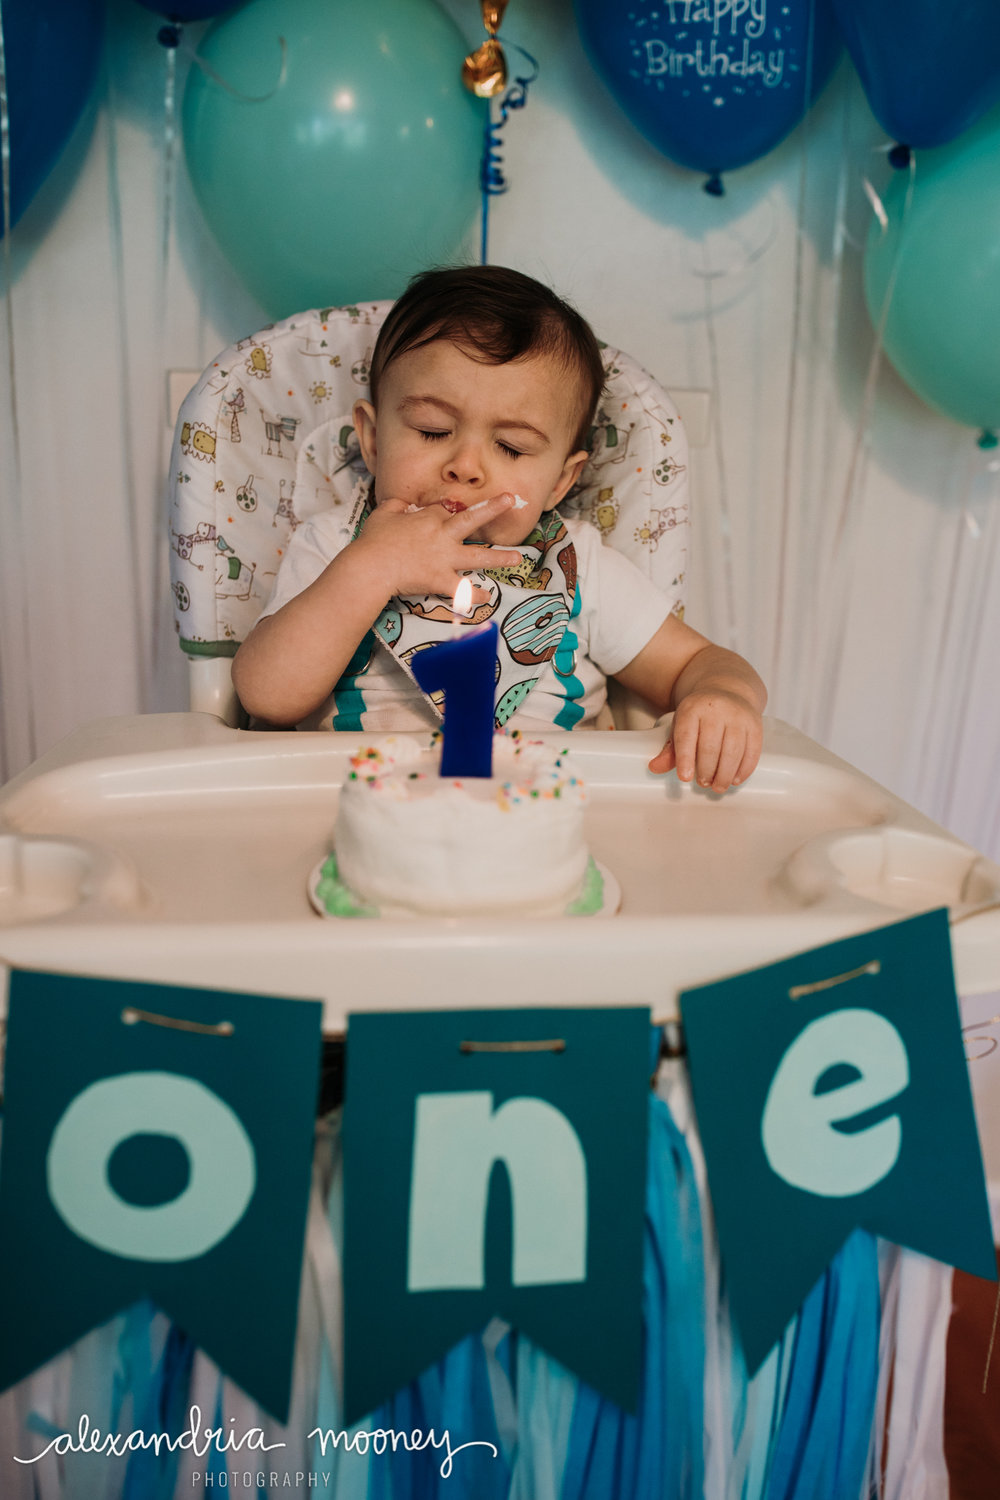 OliverFirstBirthday_Watermarked-10.jpg